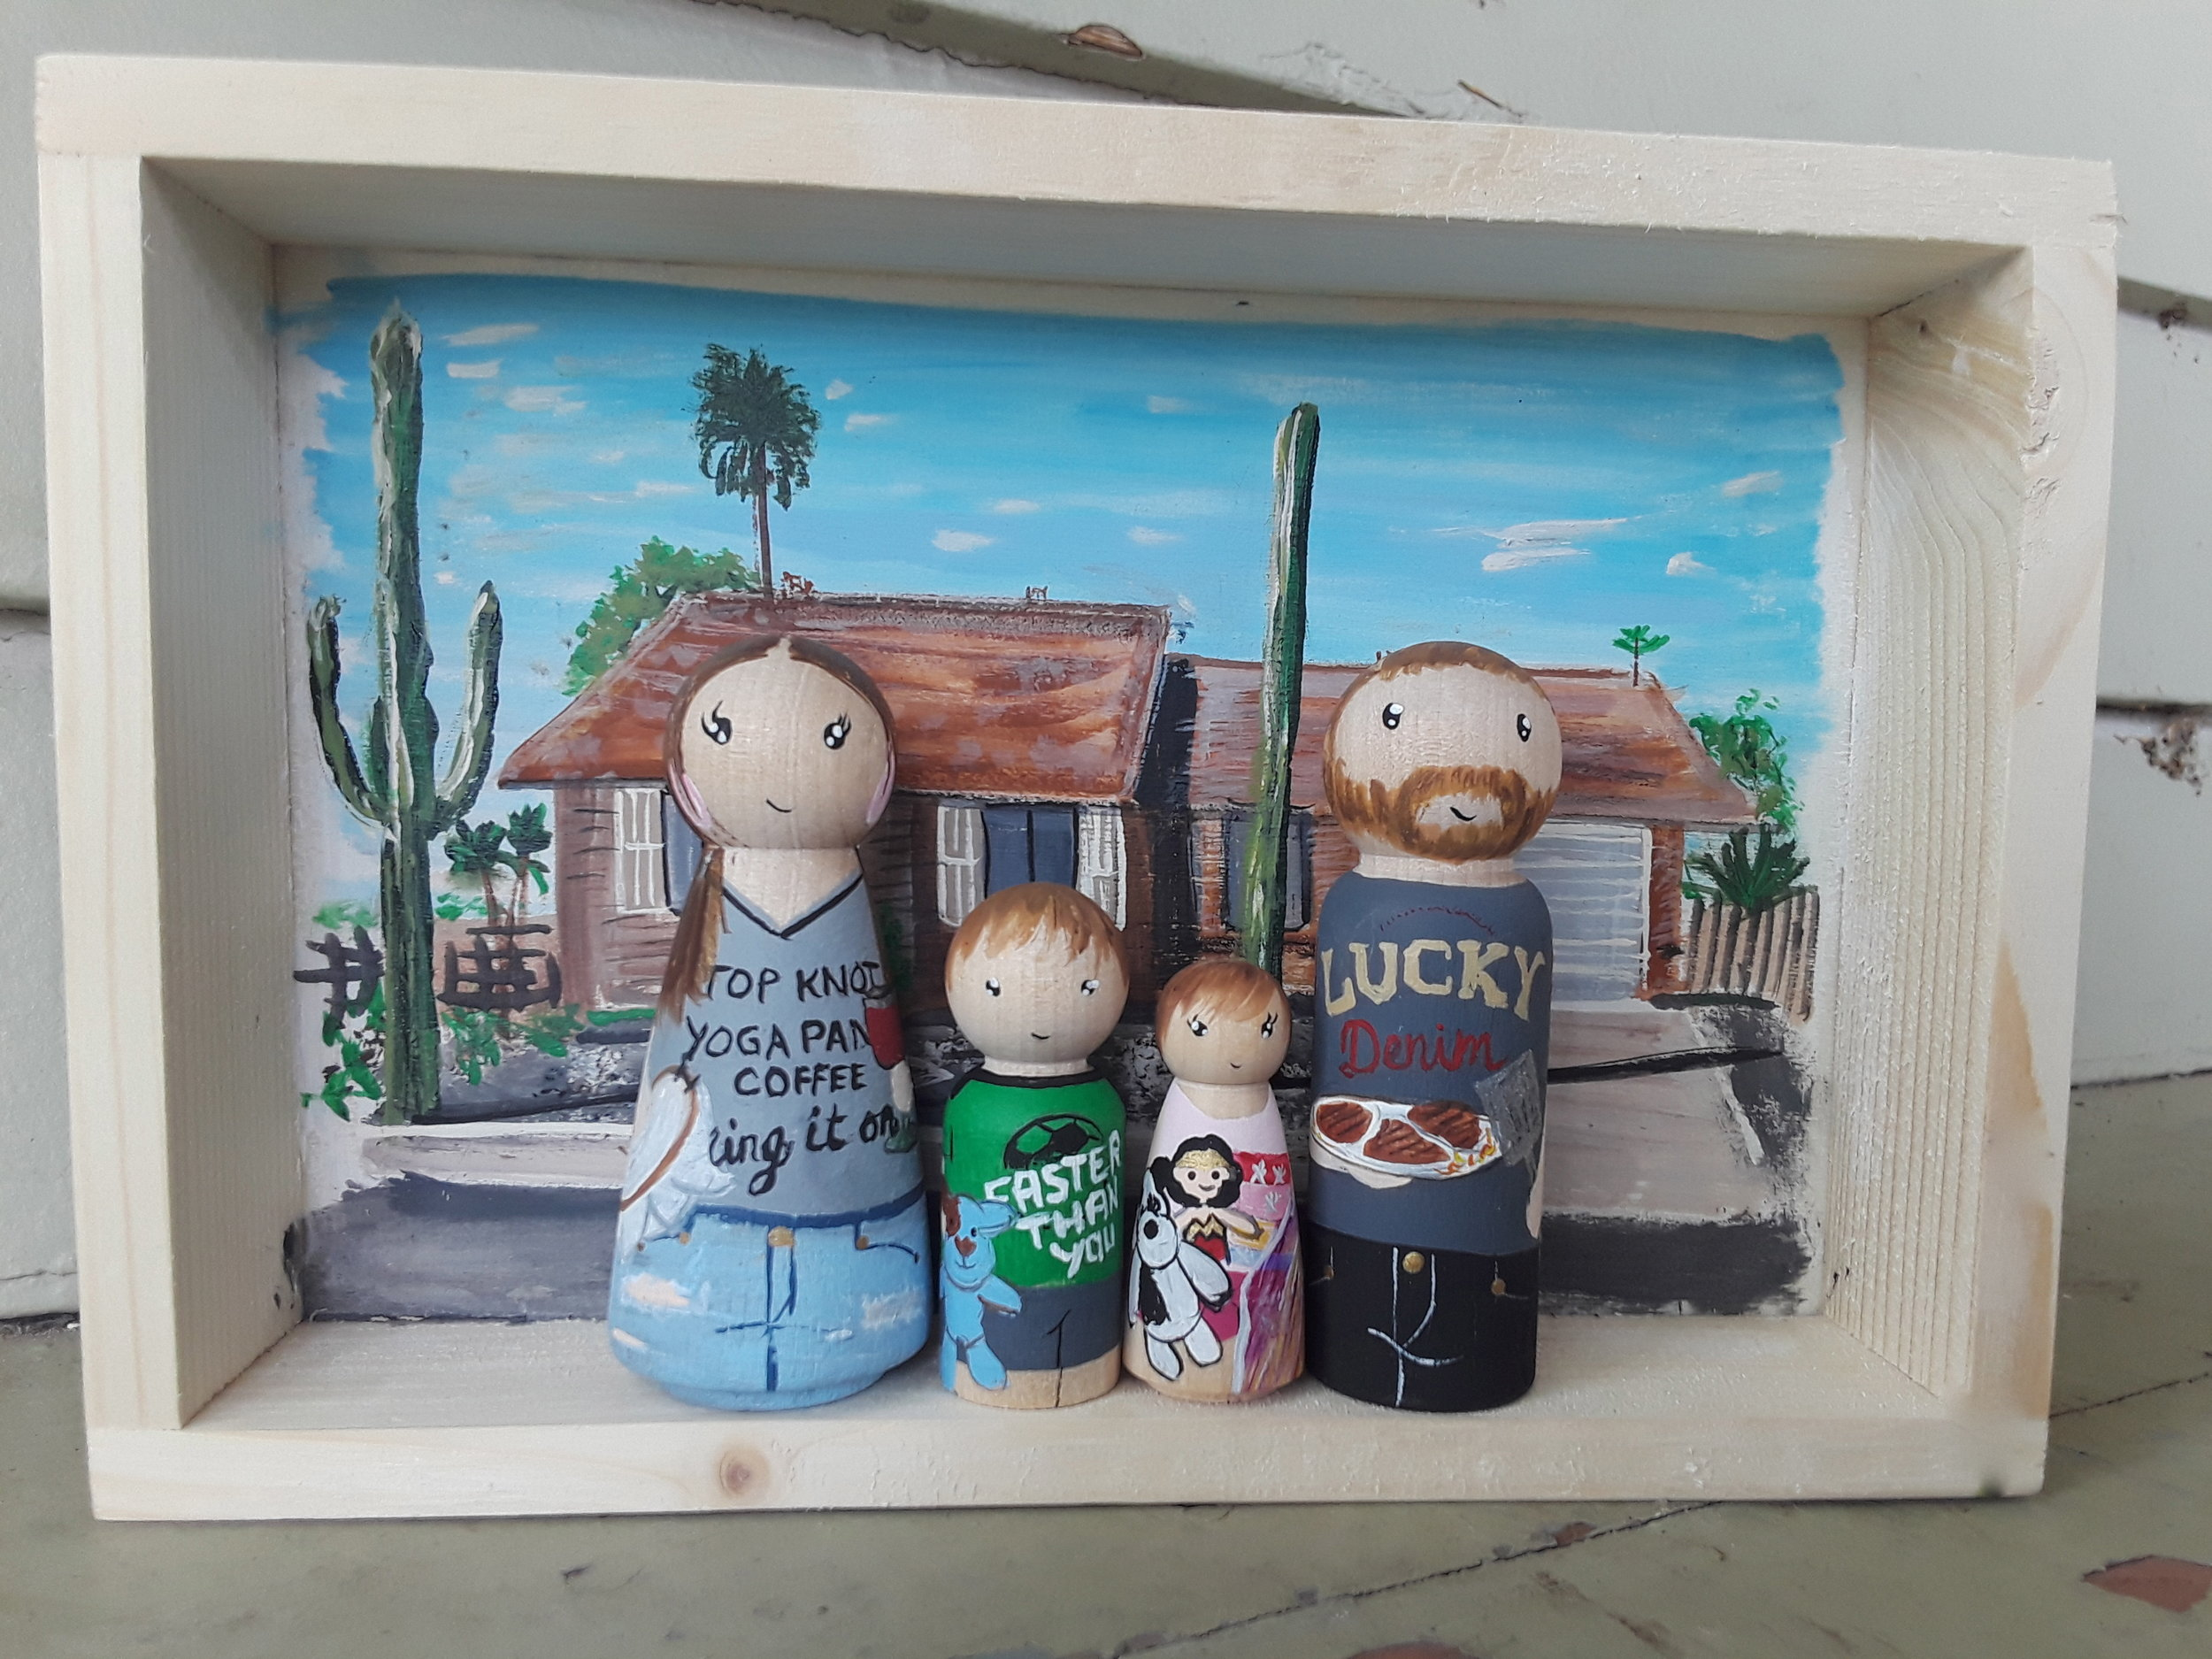 Family home - This Shadow Box and Peg Doll family is bursting with details. As a back drop is their beautiful home in Arizona, featuring their amazing cacti which I loved painting. Each little peg dolls is holding something typical for them. The mother is an amazing cross stitch artist and is holding her embroidery hoop in the one hand and a glass of red wine in the other! Her husband is holding a plate of steaks (red wine AND steaks??? The perfect combination! :)) and the kids are each dressed in their favorite outfits and holding their most loved stuffy toys.Box Size 6x8 inches. 4 peg dolls. Starts at $110